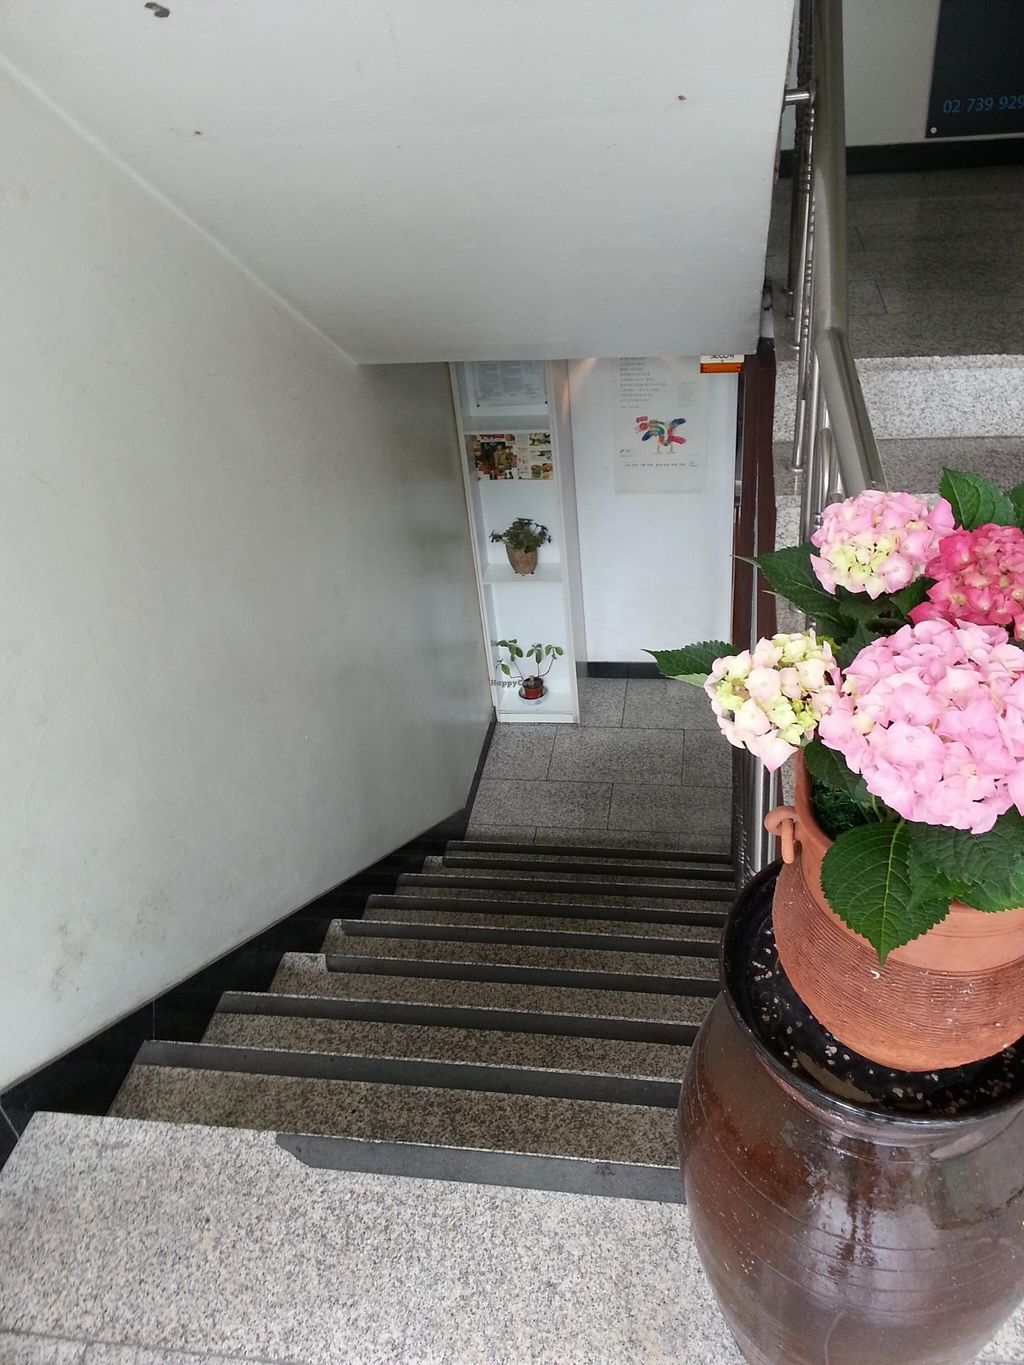 """Photo of Han Gwa Chae - 한과채  by <a href=""""/members/profile/inthesewords"""">inthesewords</a> <br/>The entrance - you go down these stairs to the place <br/> May 9, 2016  - <a href='/contact/abuse/image/11982/148167'>Report</a>"""